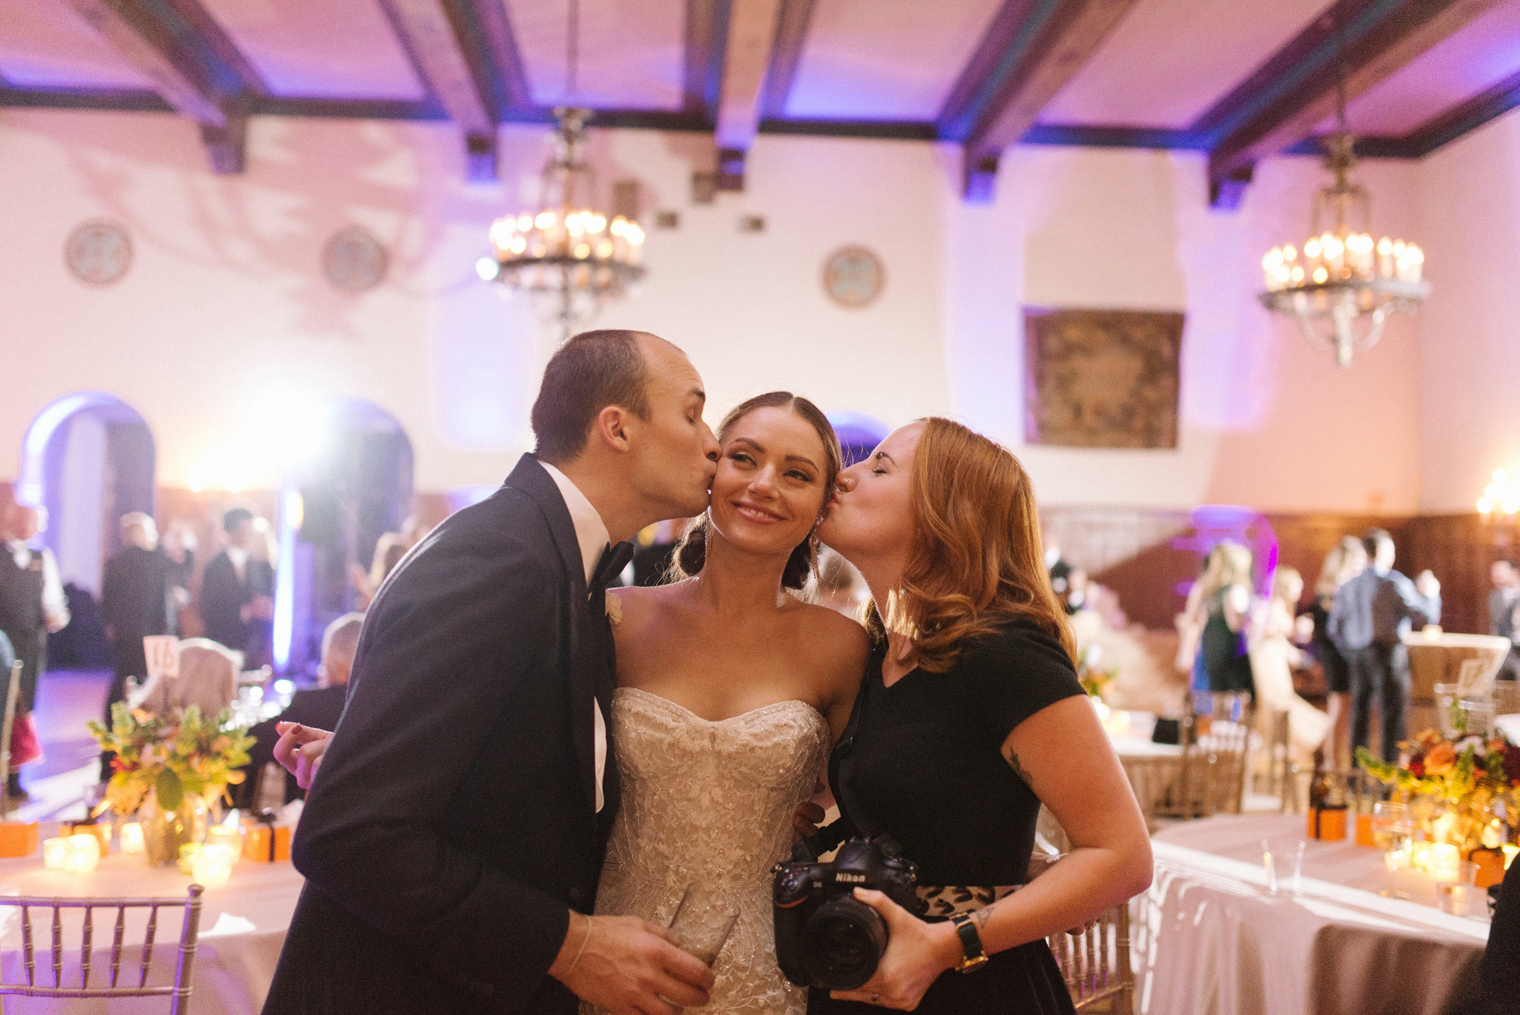 Wedding Photographer Heather Jowett poses with her bride and groom at a Detroit Yacht Club wedding.